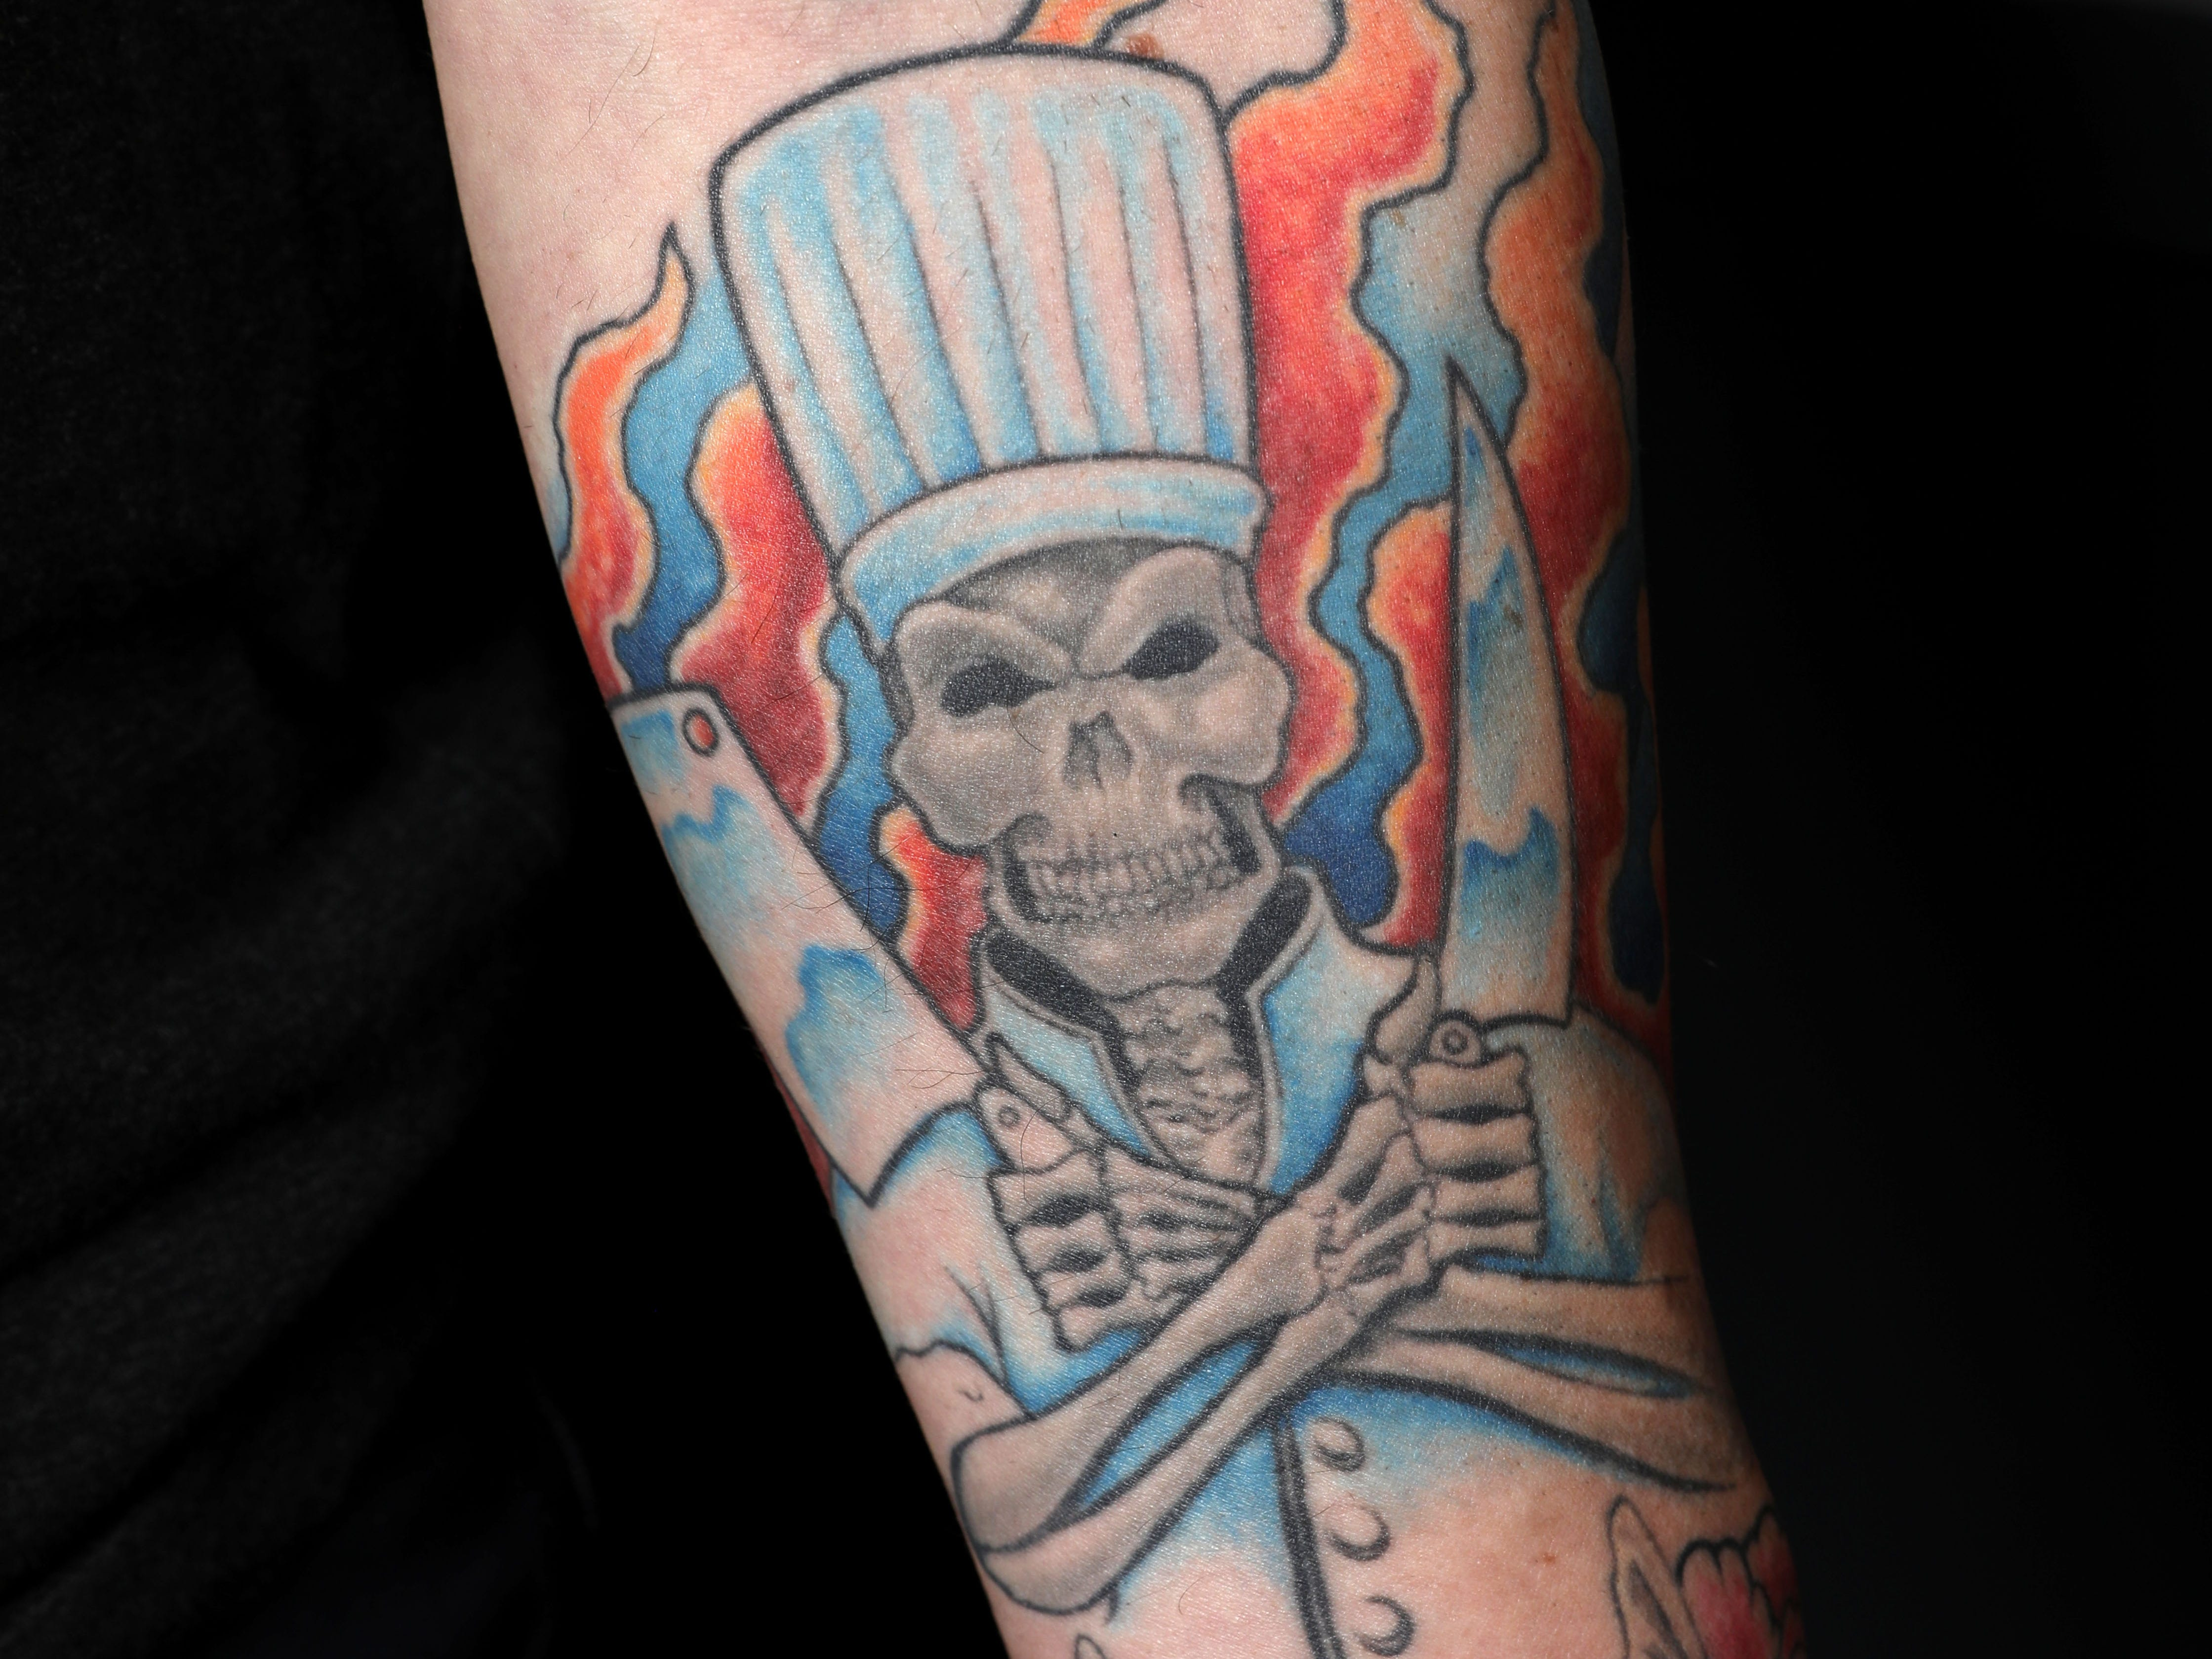 A skeleton chef with knives and fire flames tattoo on chef Matthew Safarowic's arm at The Whitlock in Katonah March 14, 2019.